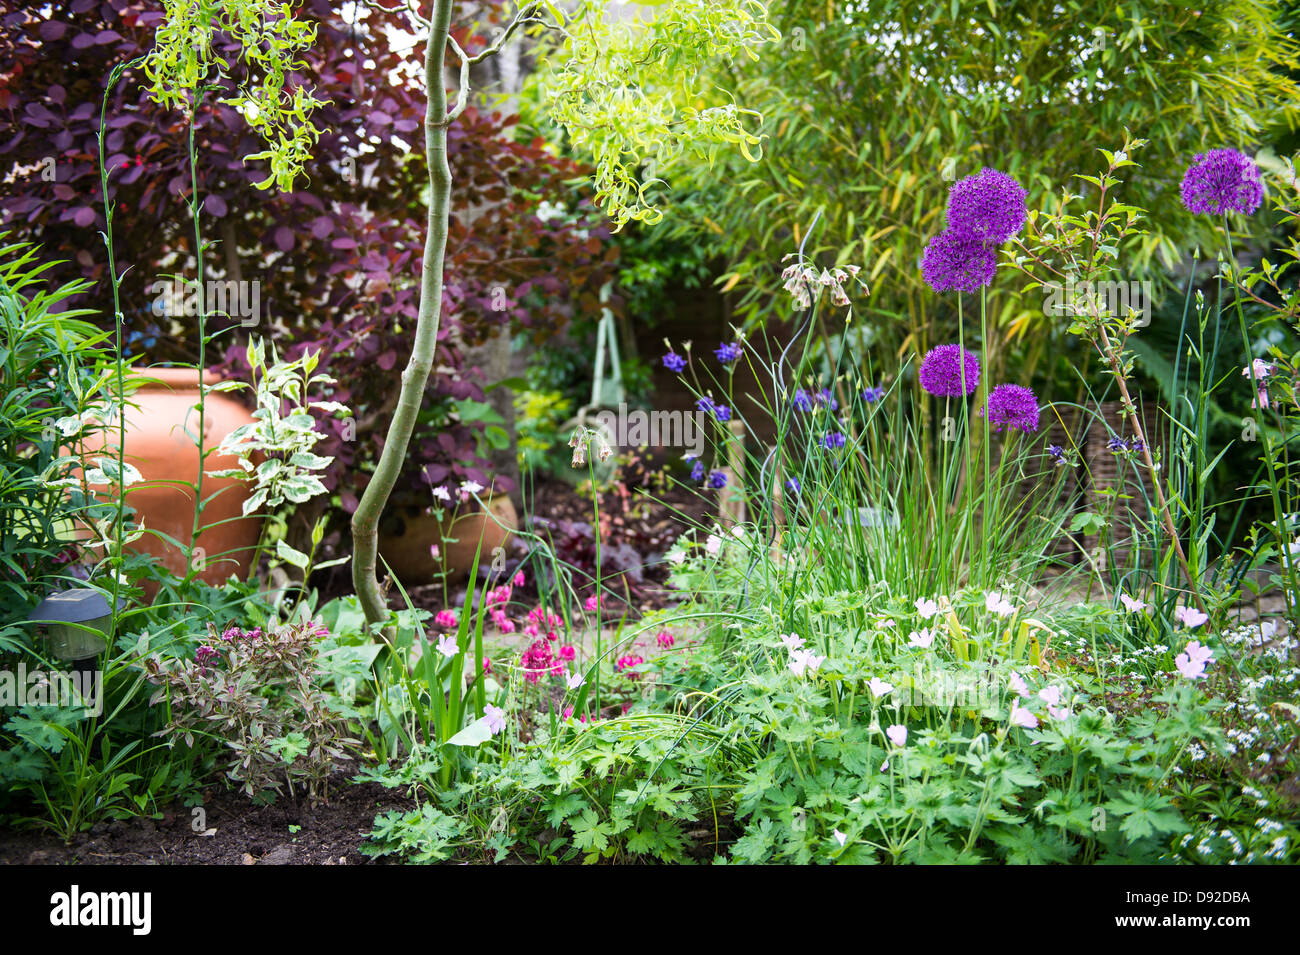 Large Alium in a shady corner of a garden with a hint of sunlight bringing highlights to the corner, with garden - Stock Image